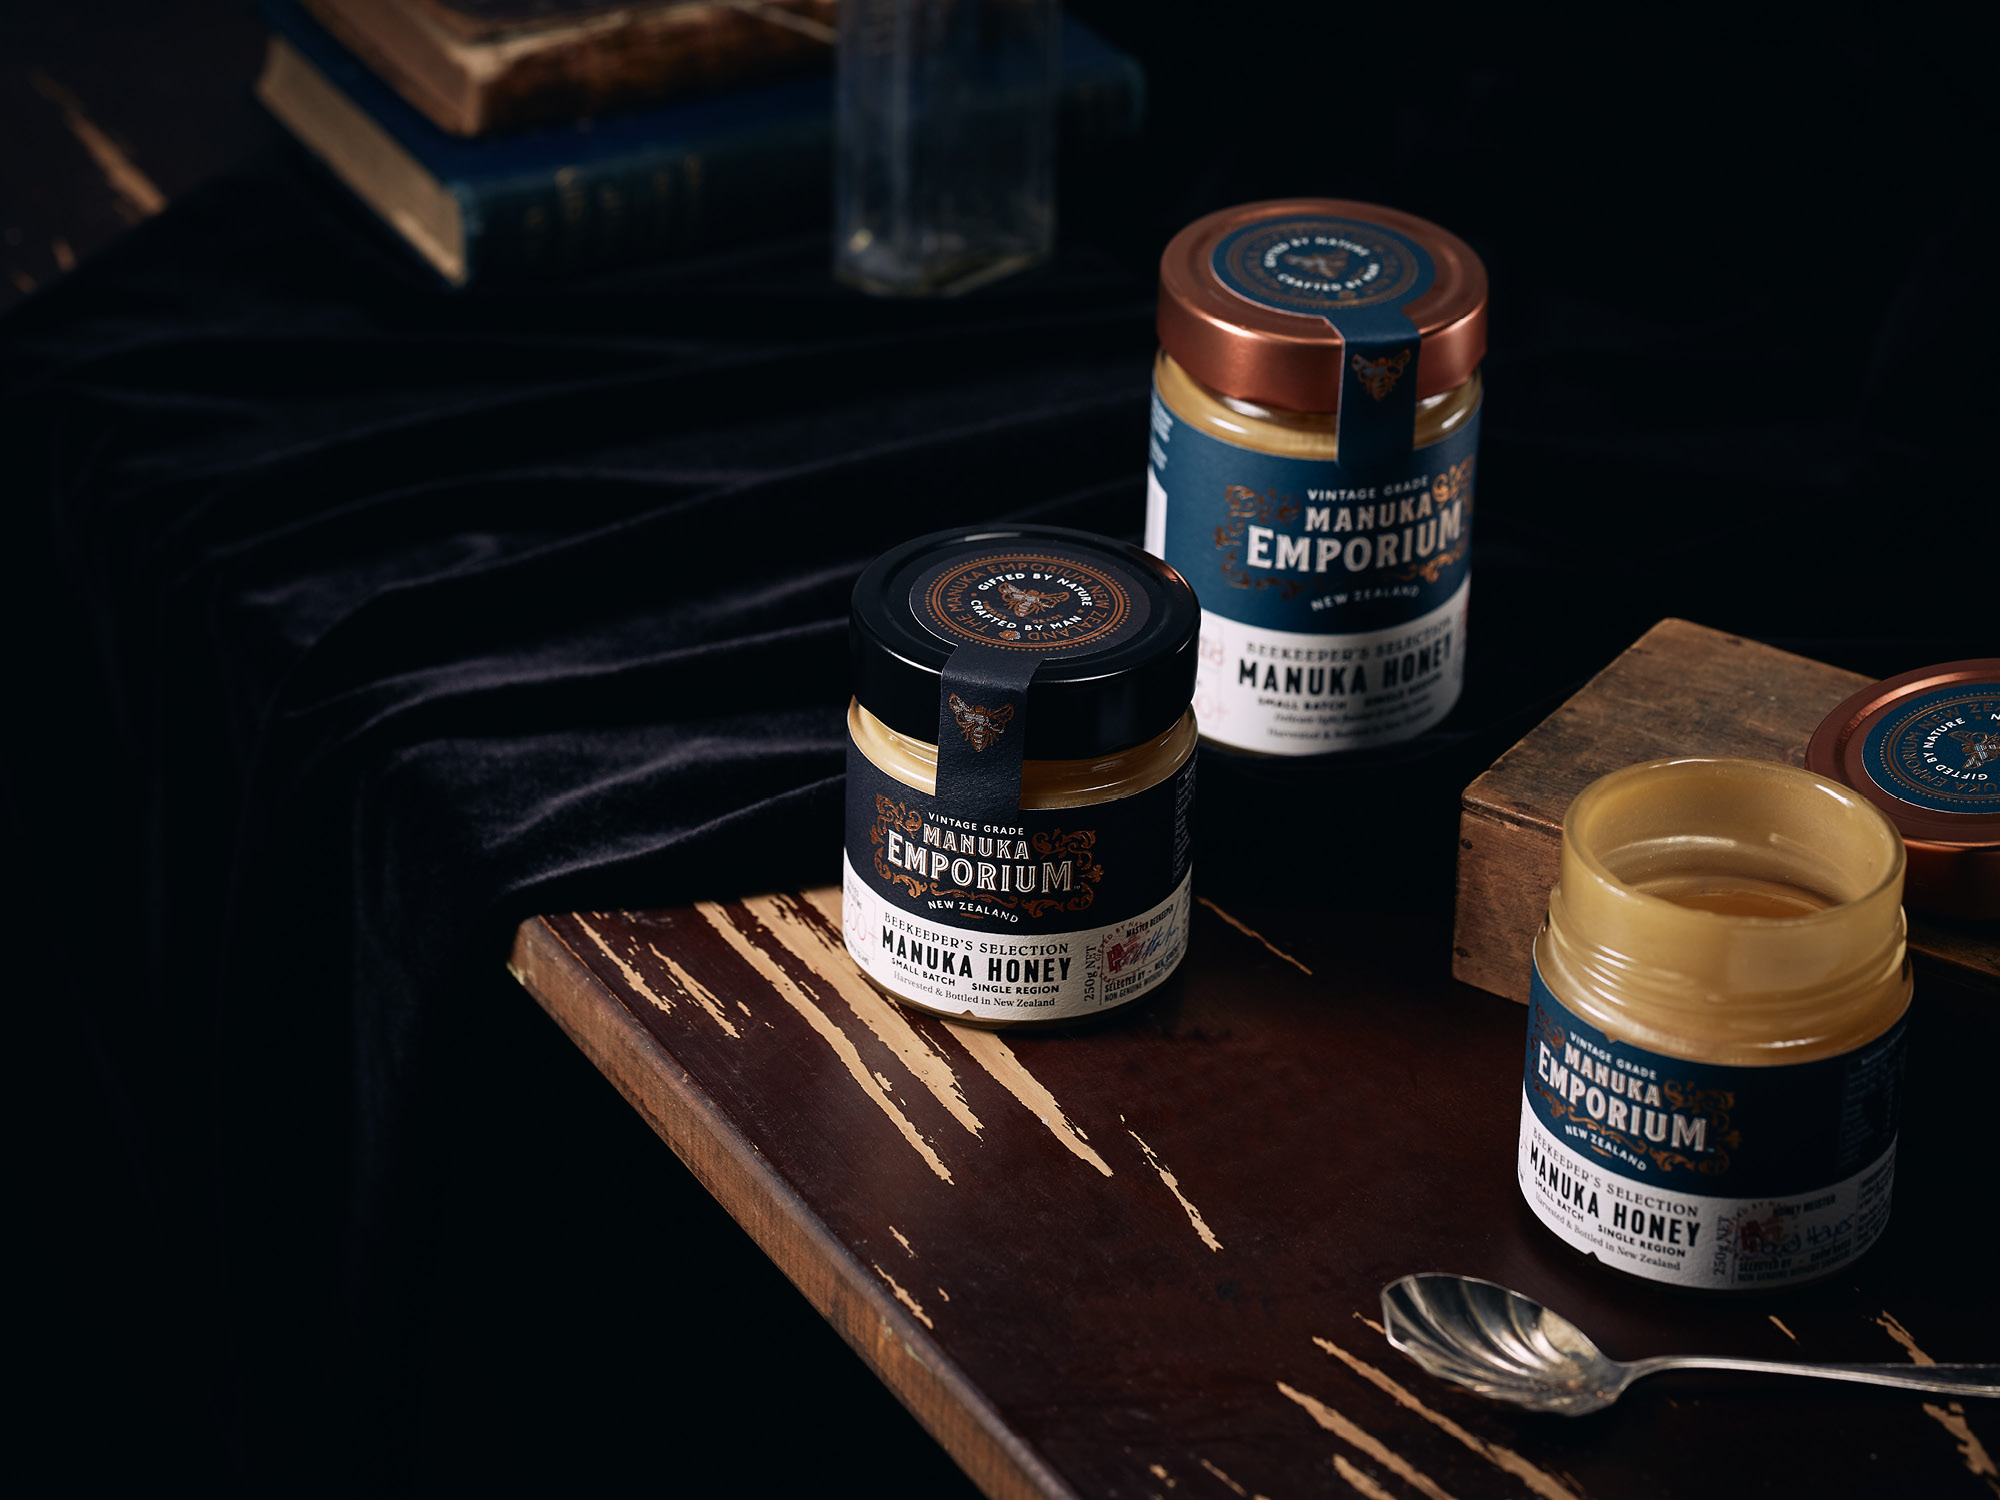 Onfire Design Manuka Emporium Honey Packaging Branding Design 18